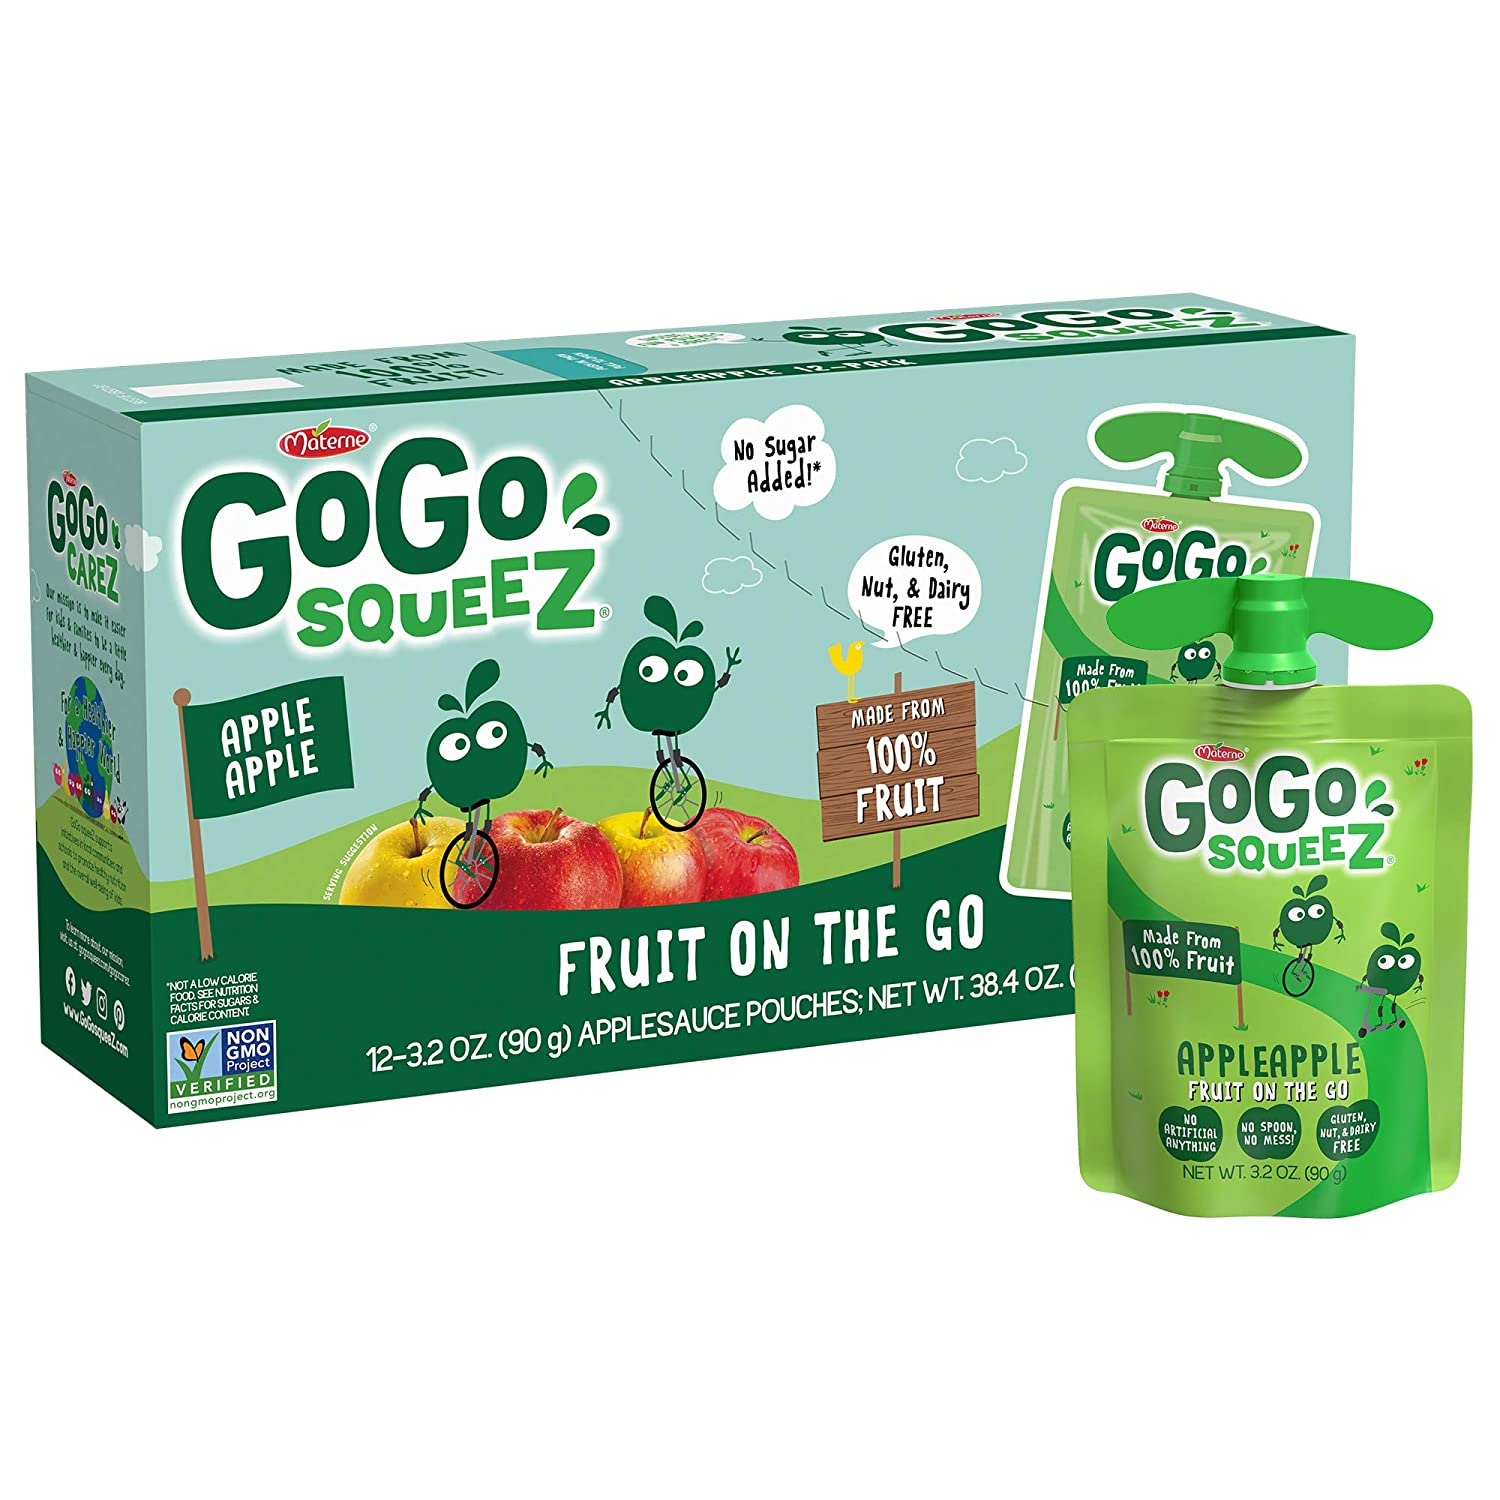 GoGo squeeZ Applesauce on the Go, Apple Apple, 3.2 Ounce (12 Pouches), Gluten Free, Vegan Friendly, Unsweetened Applesauce, Recloseable, BPA Free Pouches (Packaging May Vary)